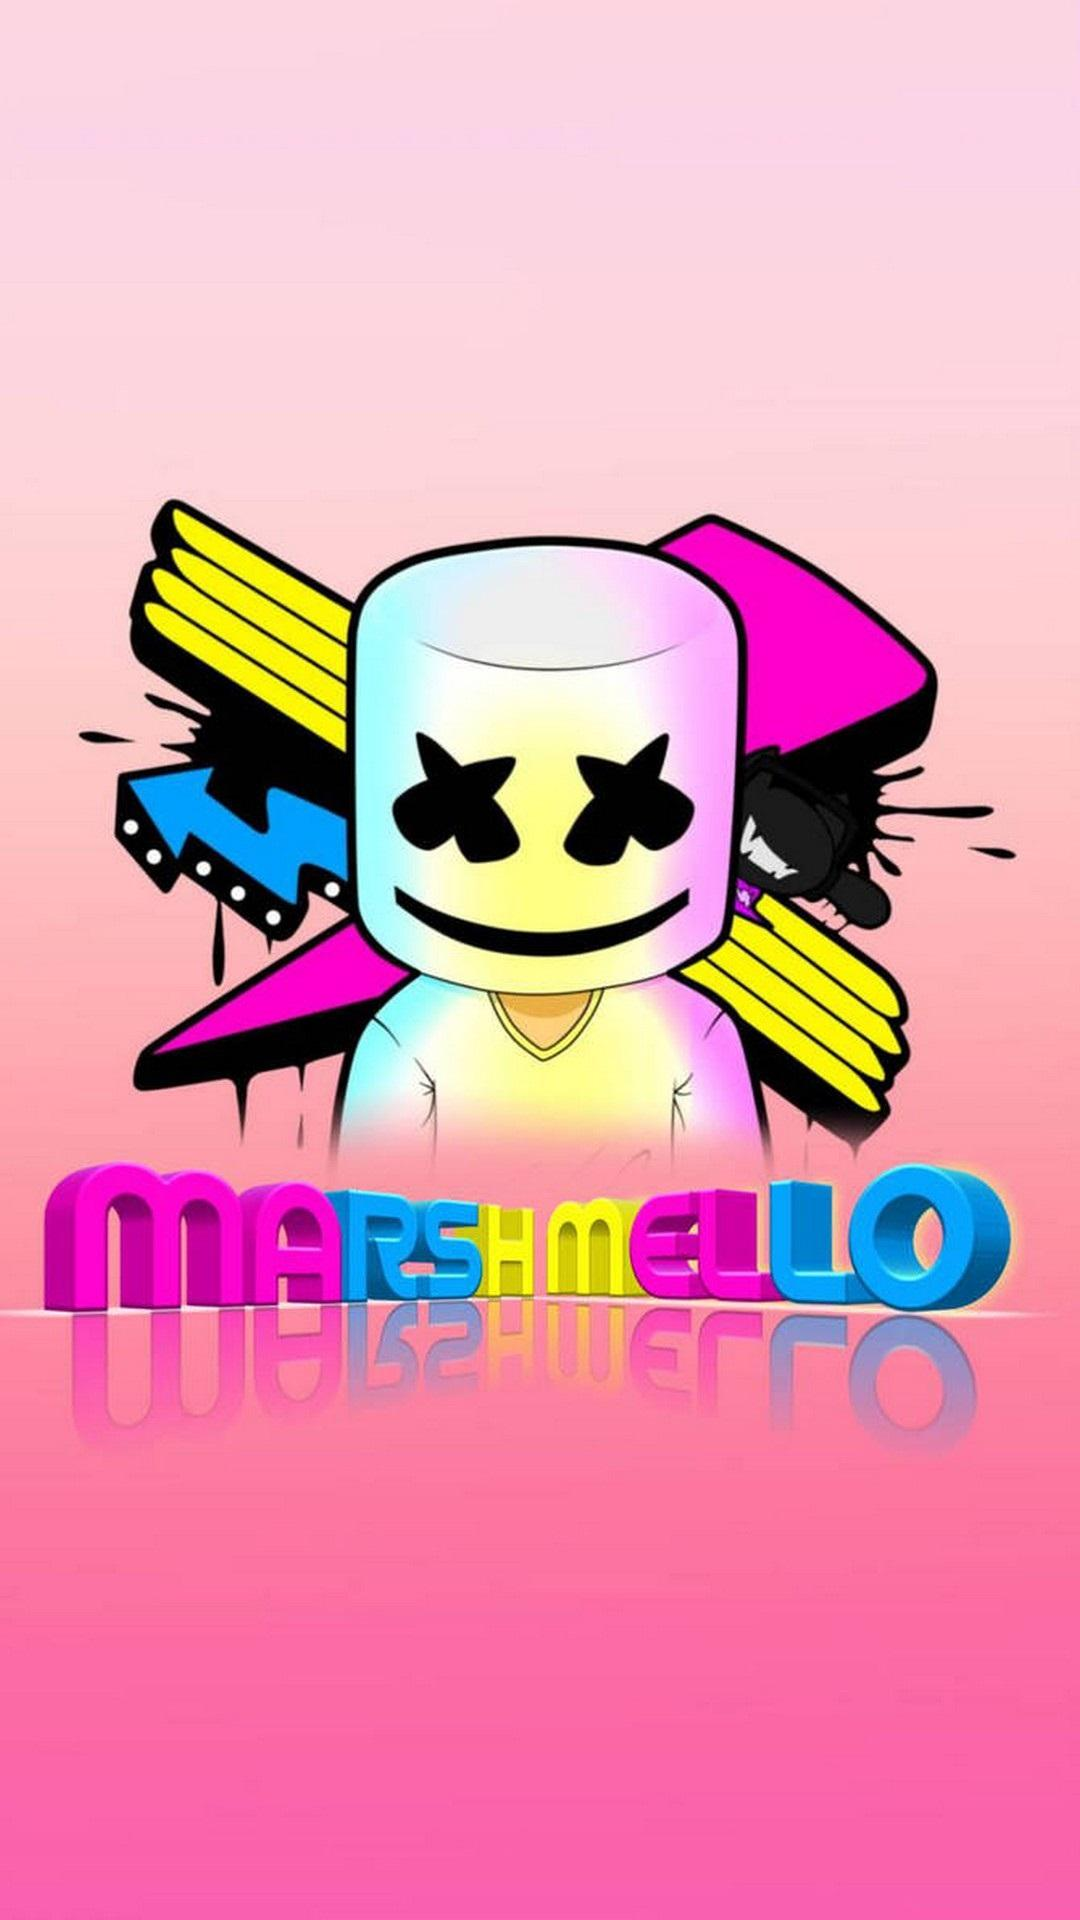 Marshmello Iphone Wallpapers Wallpaper Cave